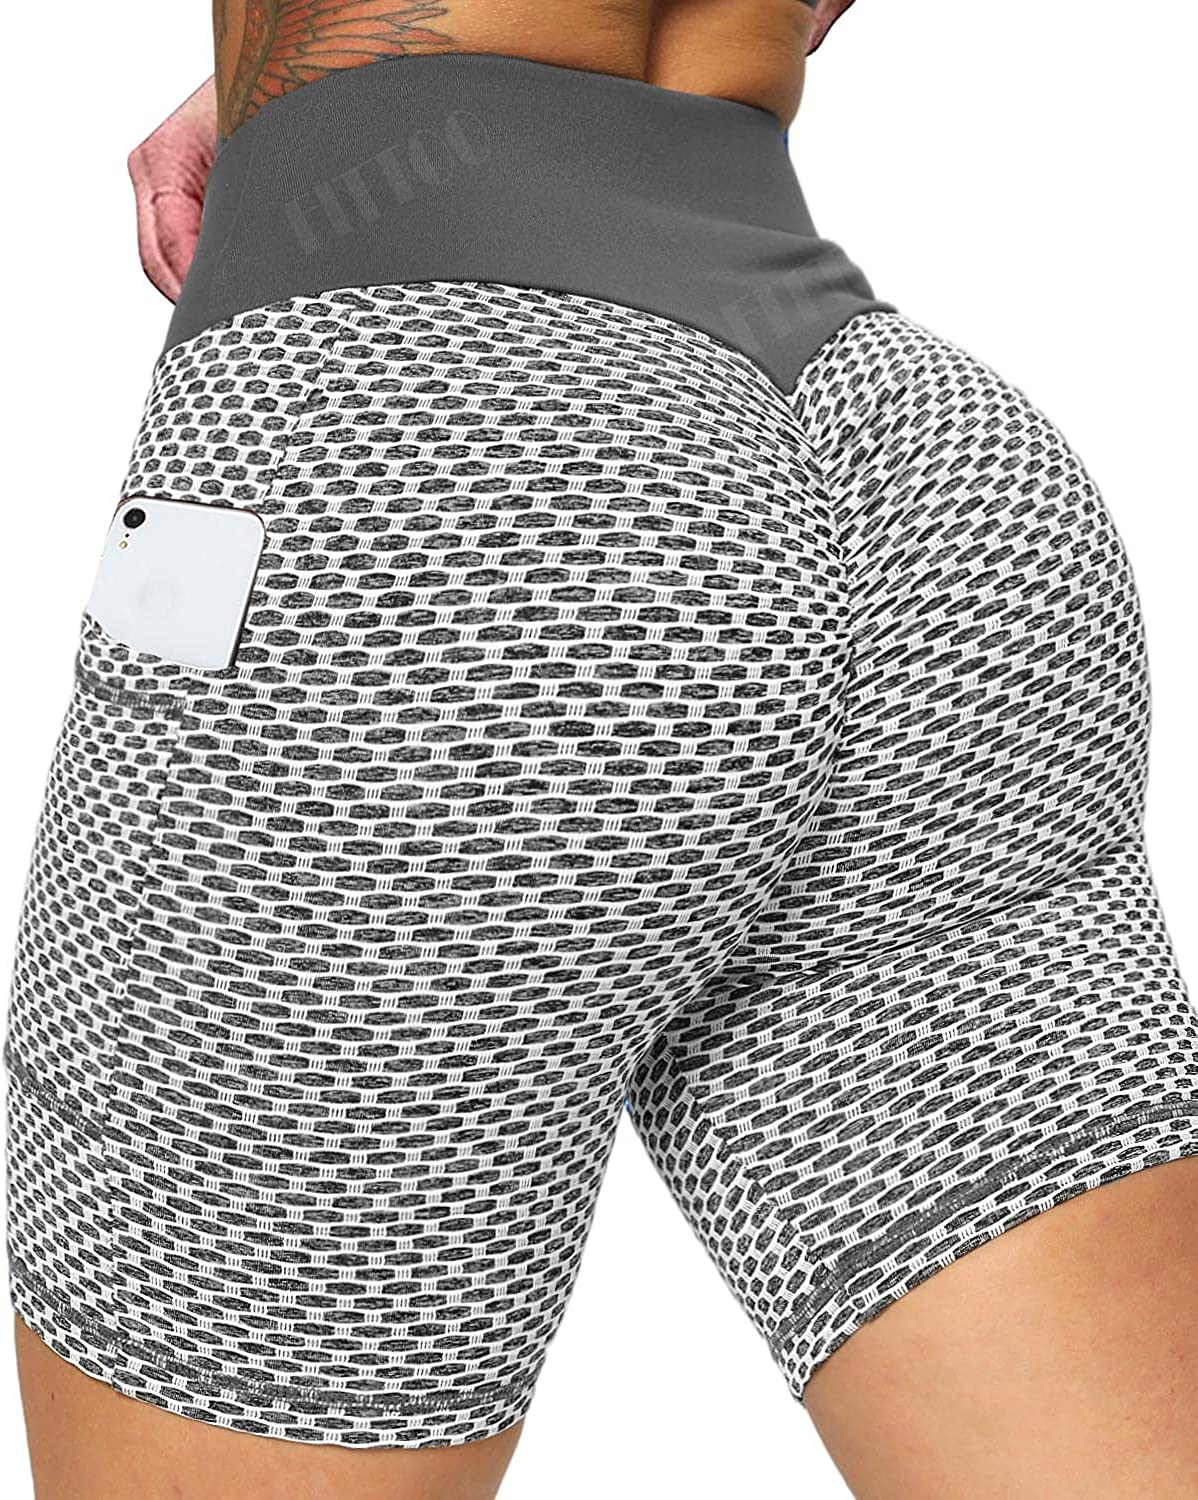 New item FITTOO High Waisted Biker Shorts with Pocket S Women for outlet Workout